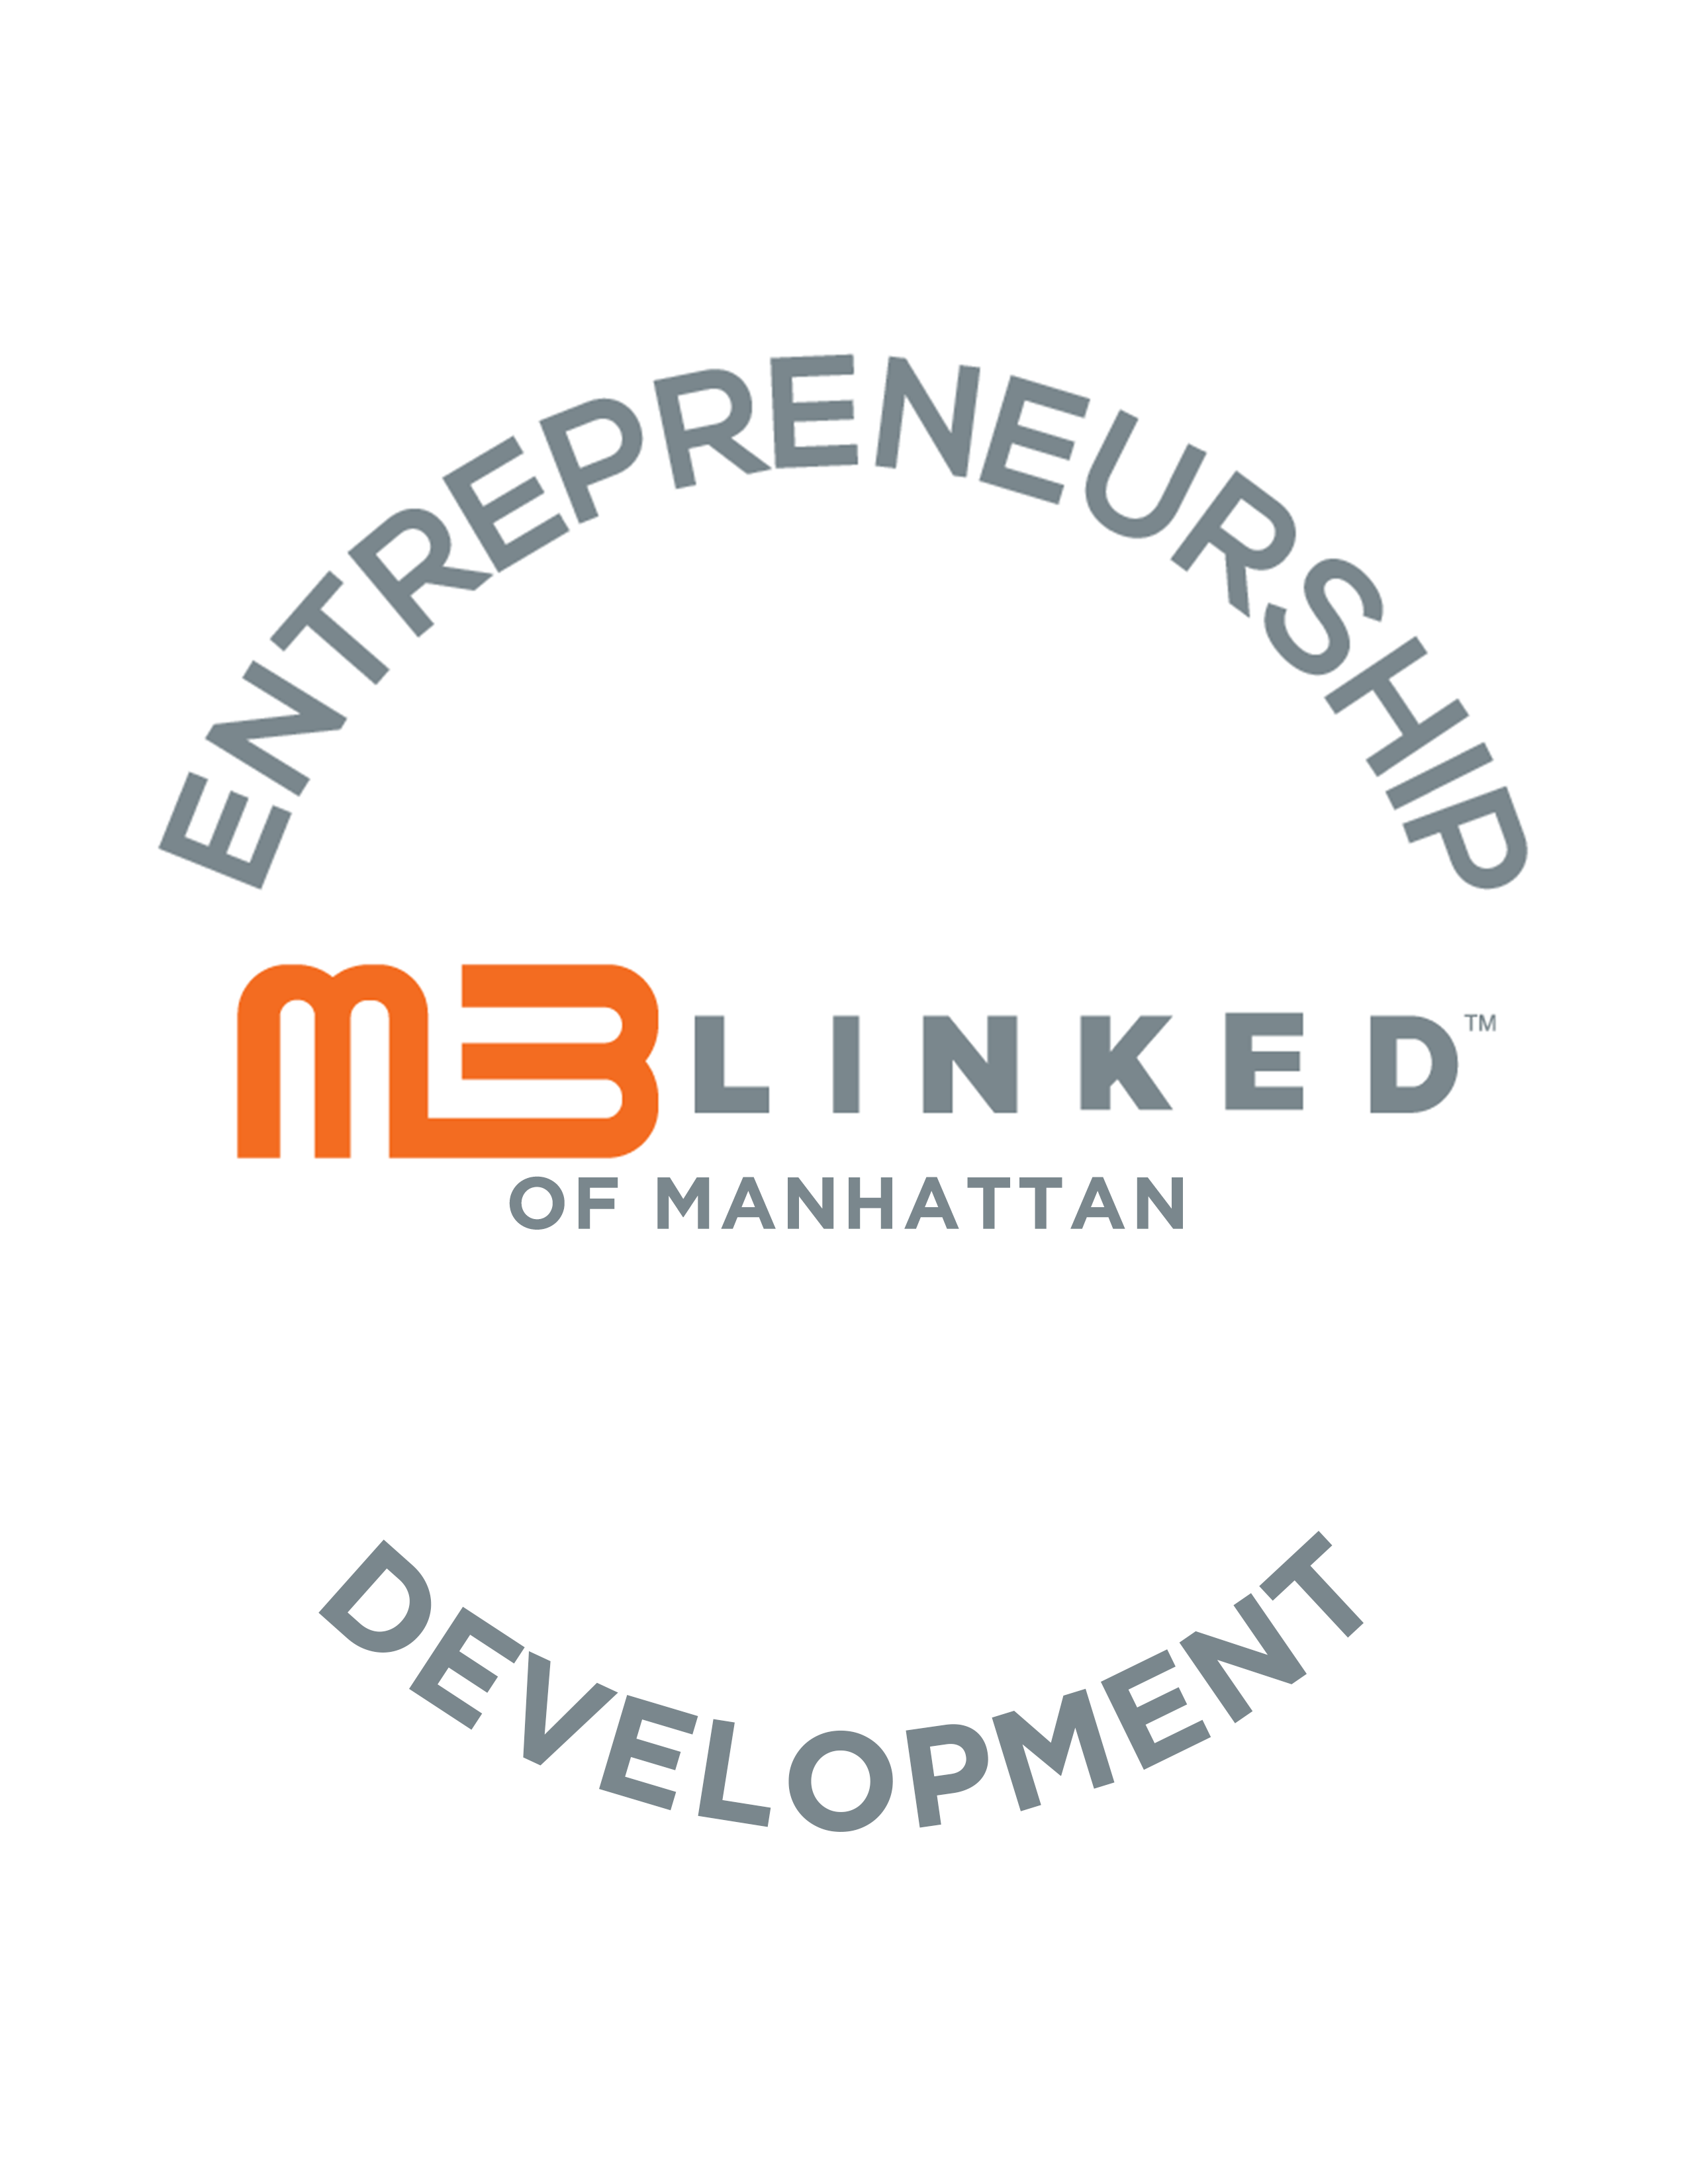 Revolutionary New Company M3Linked Entrepreneurship Development Of Manhattan Helps Businesses Evolve Through Virtual Networking & Business Collaboration